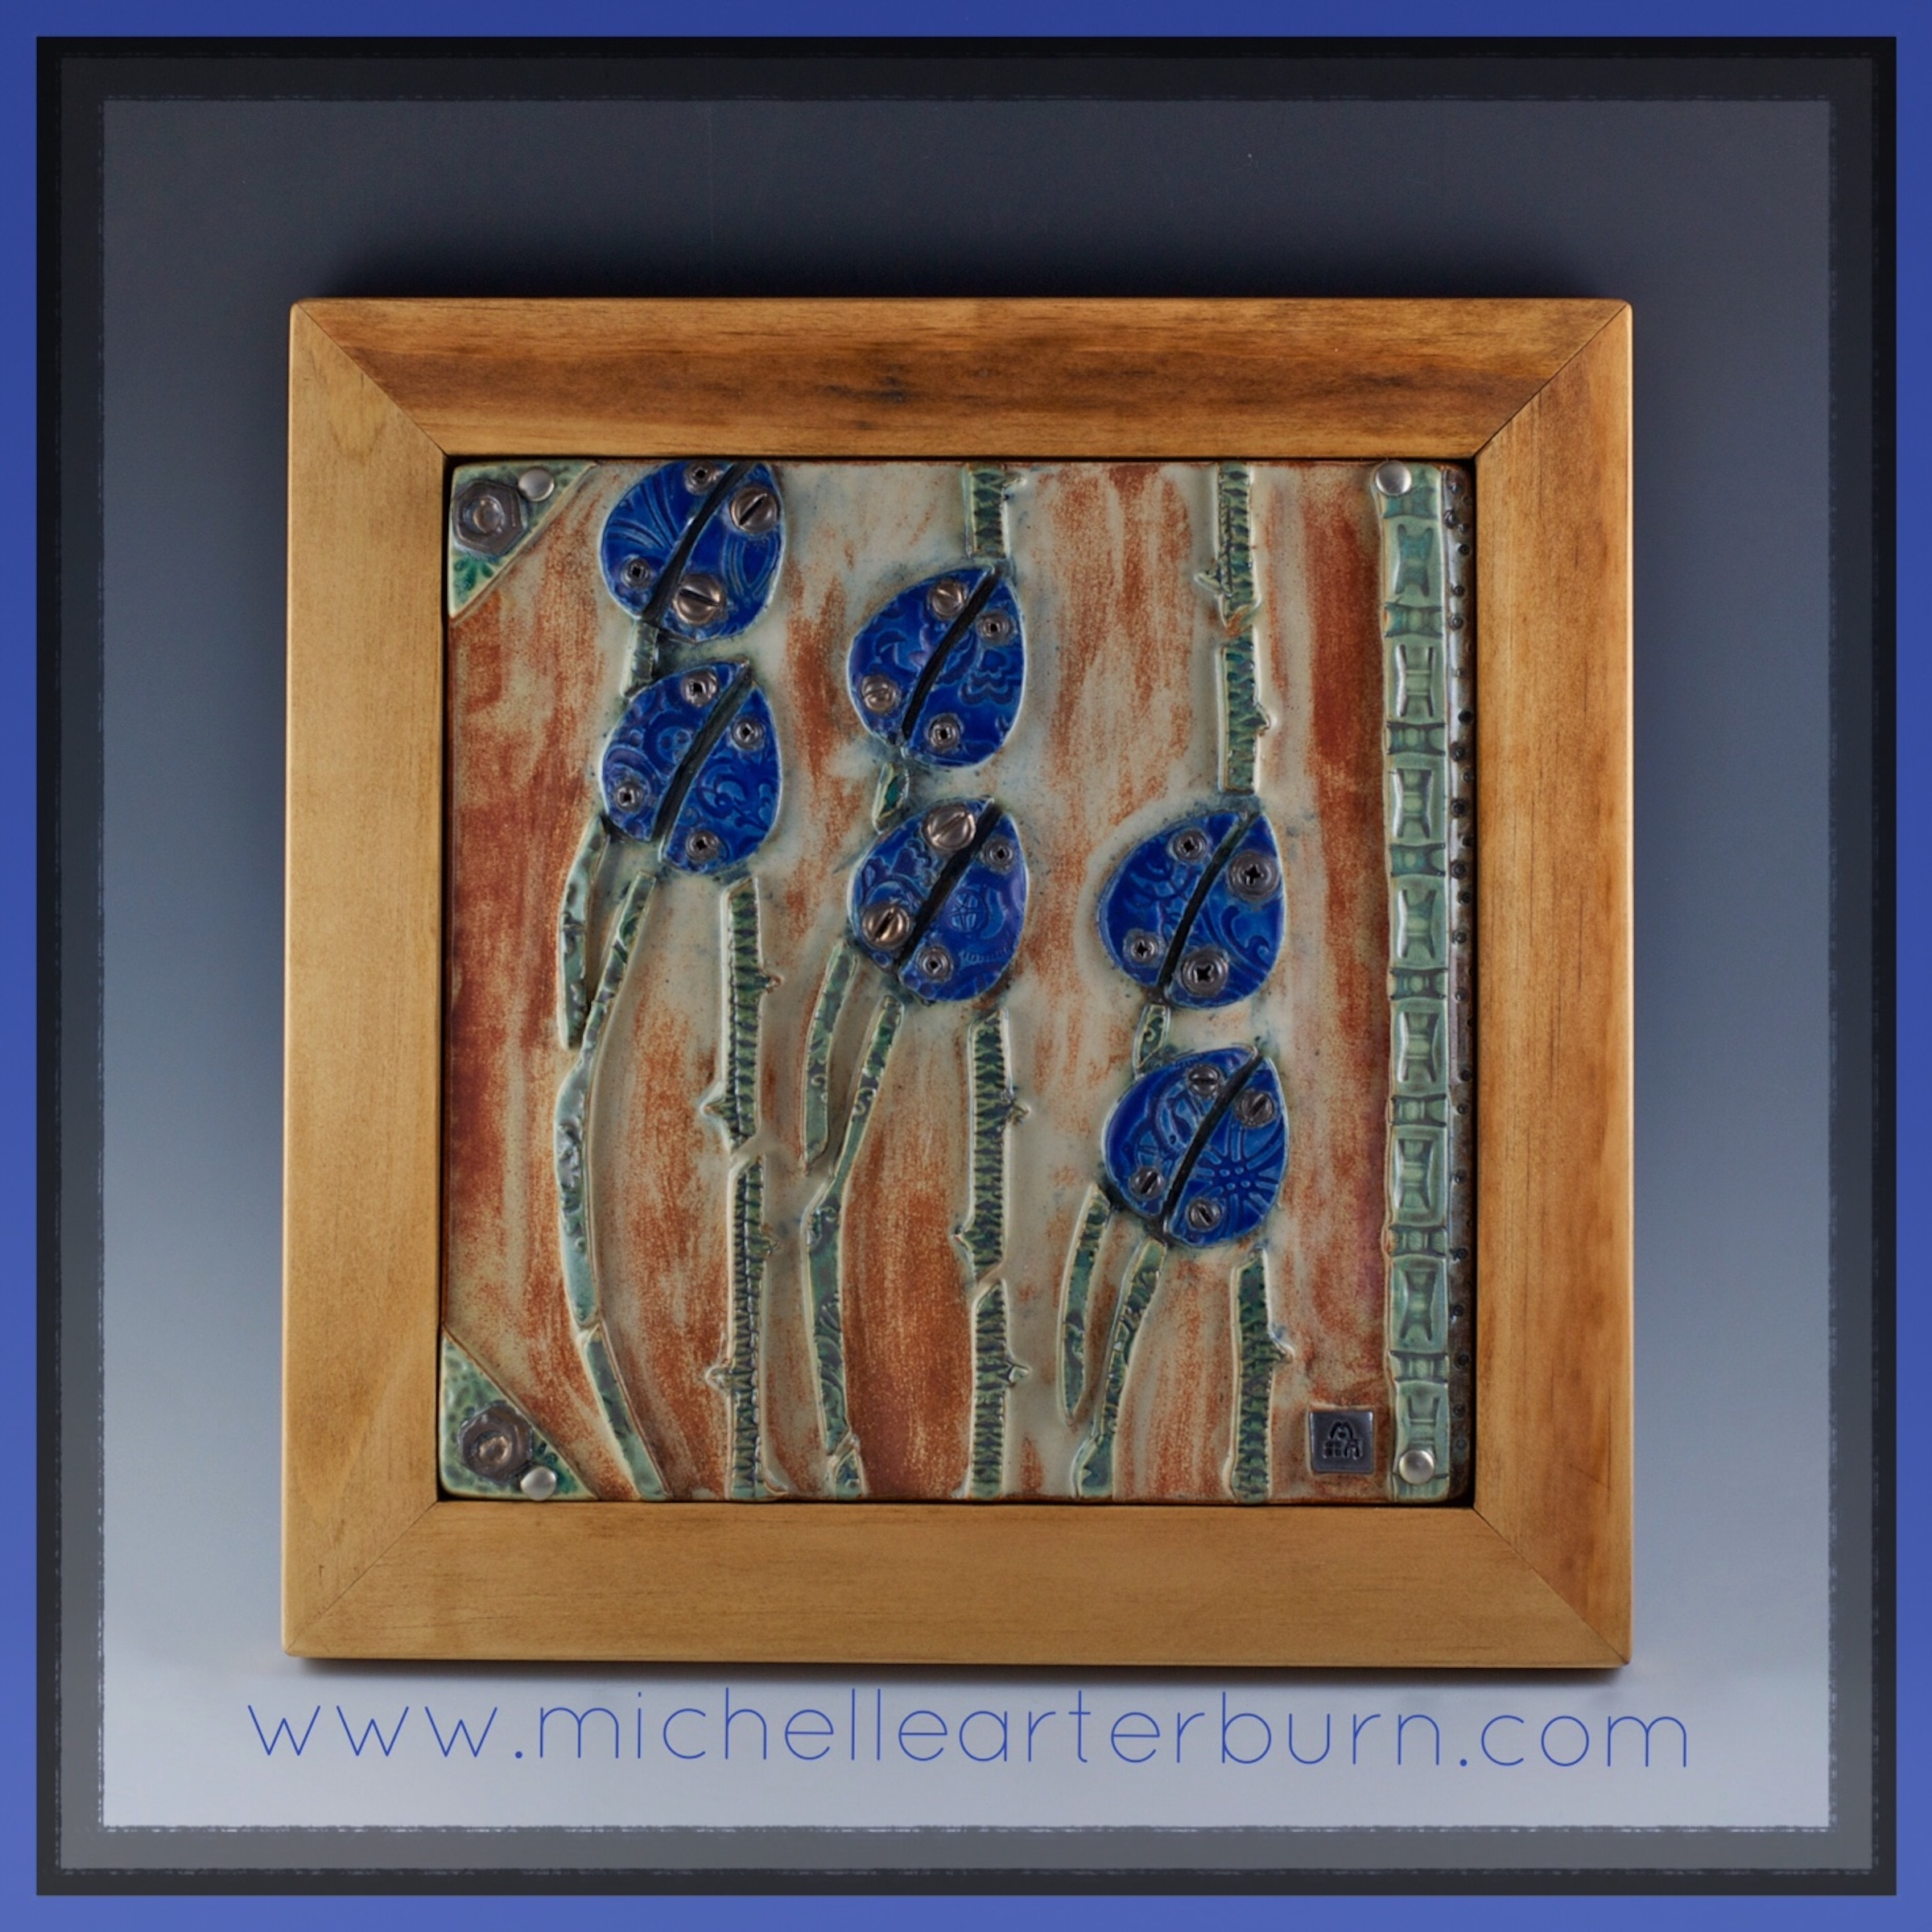 Hand-crafted Tile/Stoneware - Framed